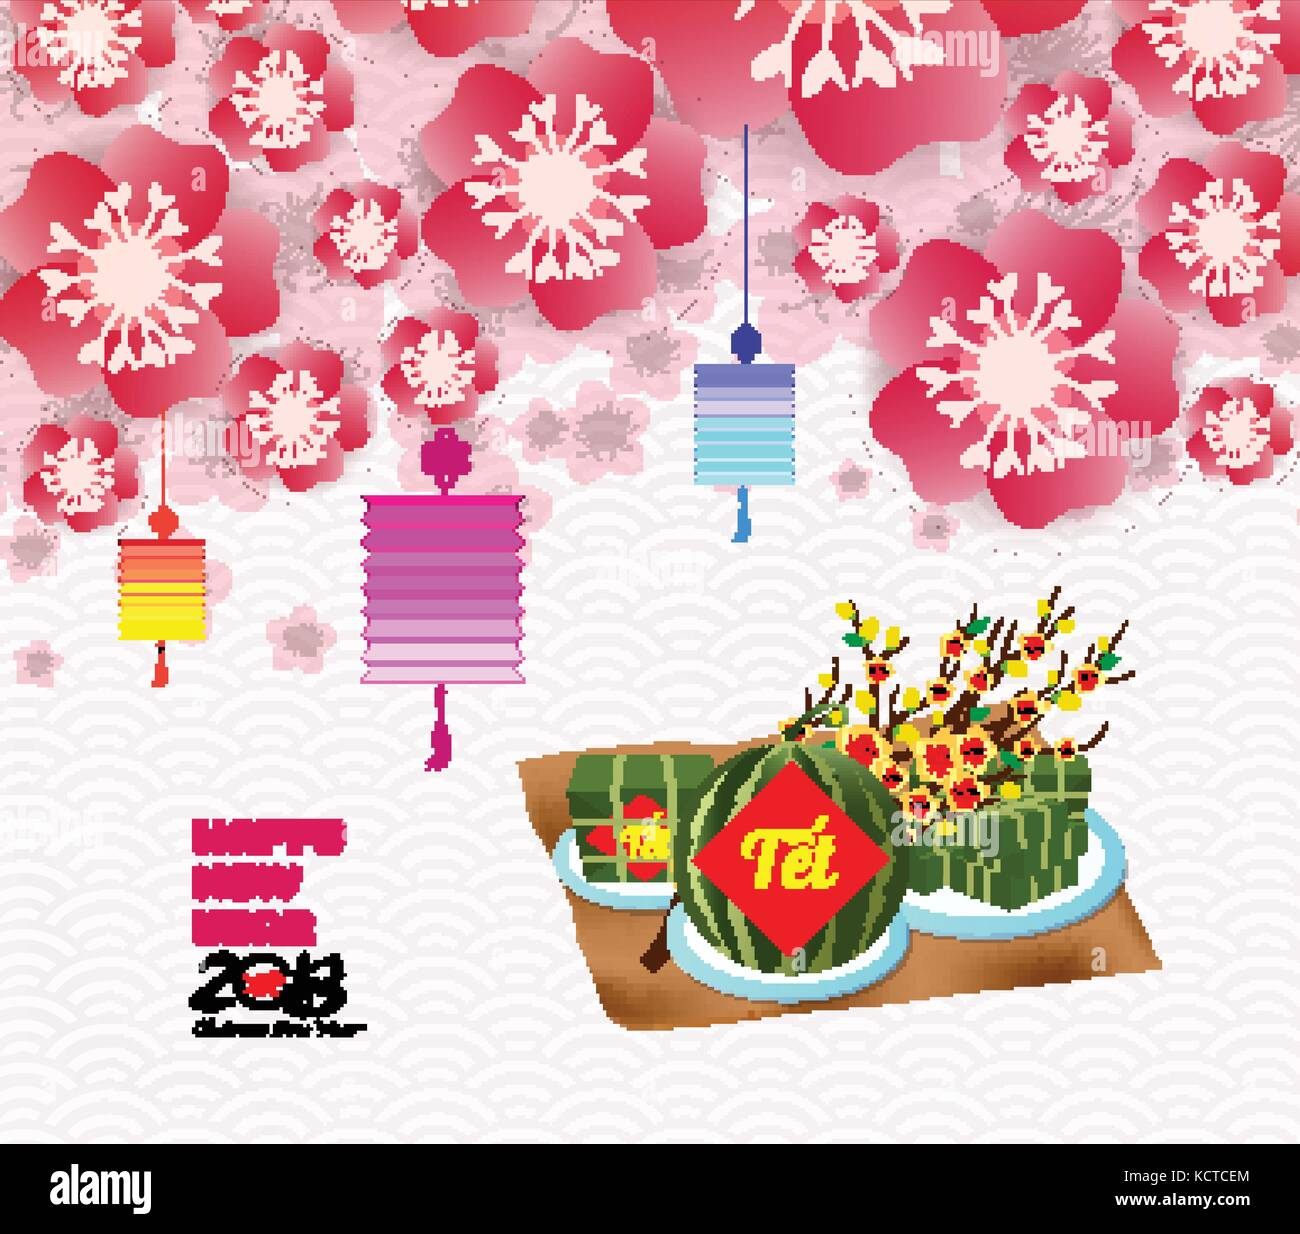 chinese new year background blossom sakura branches vietnamese new year translation tet lunar new year